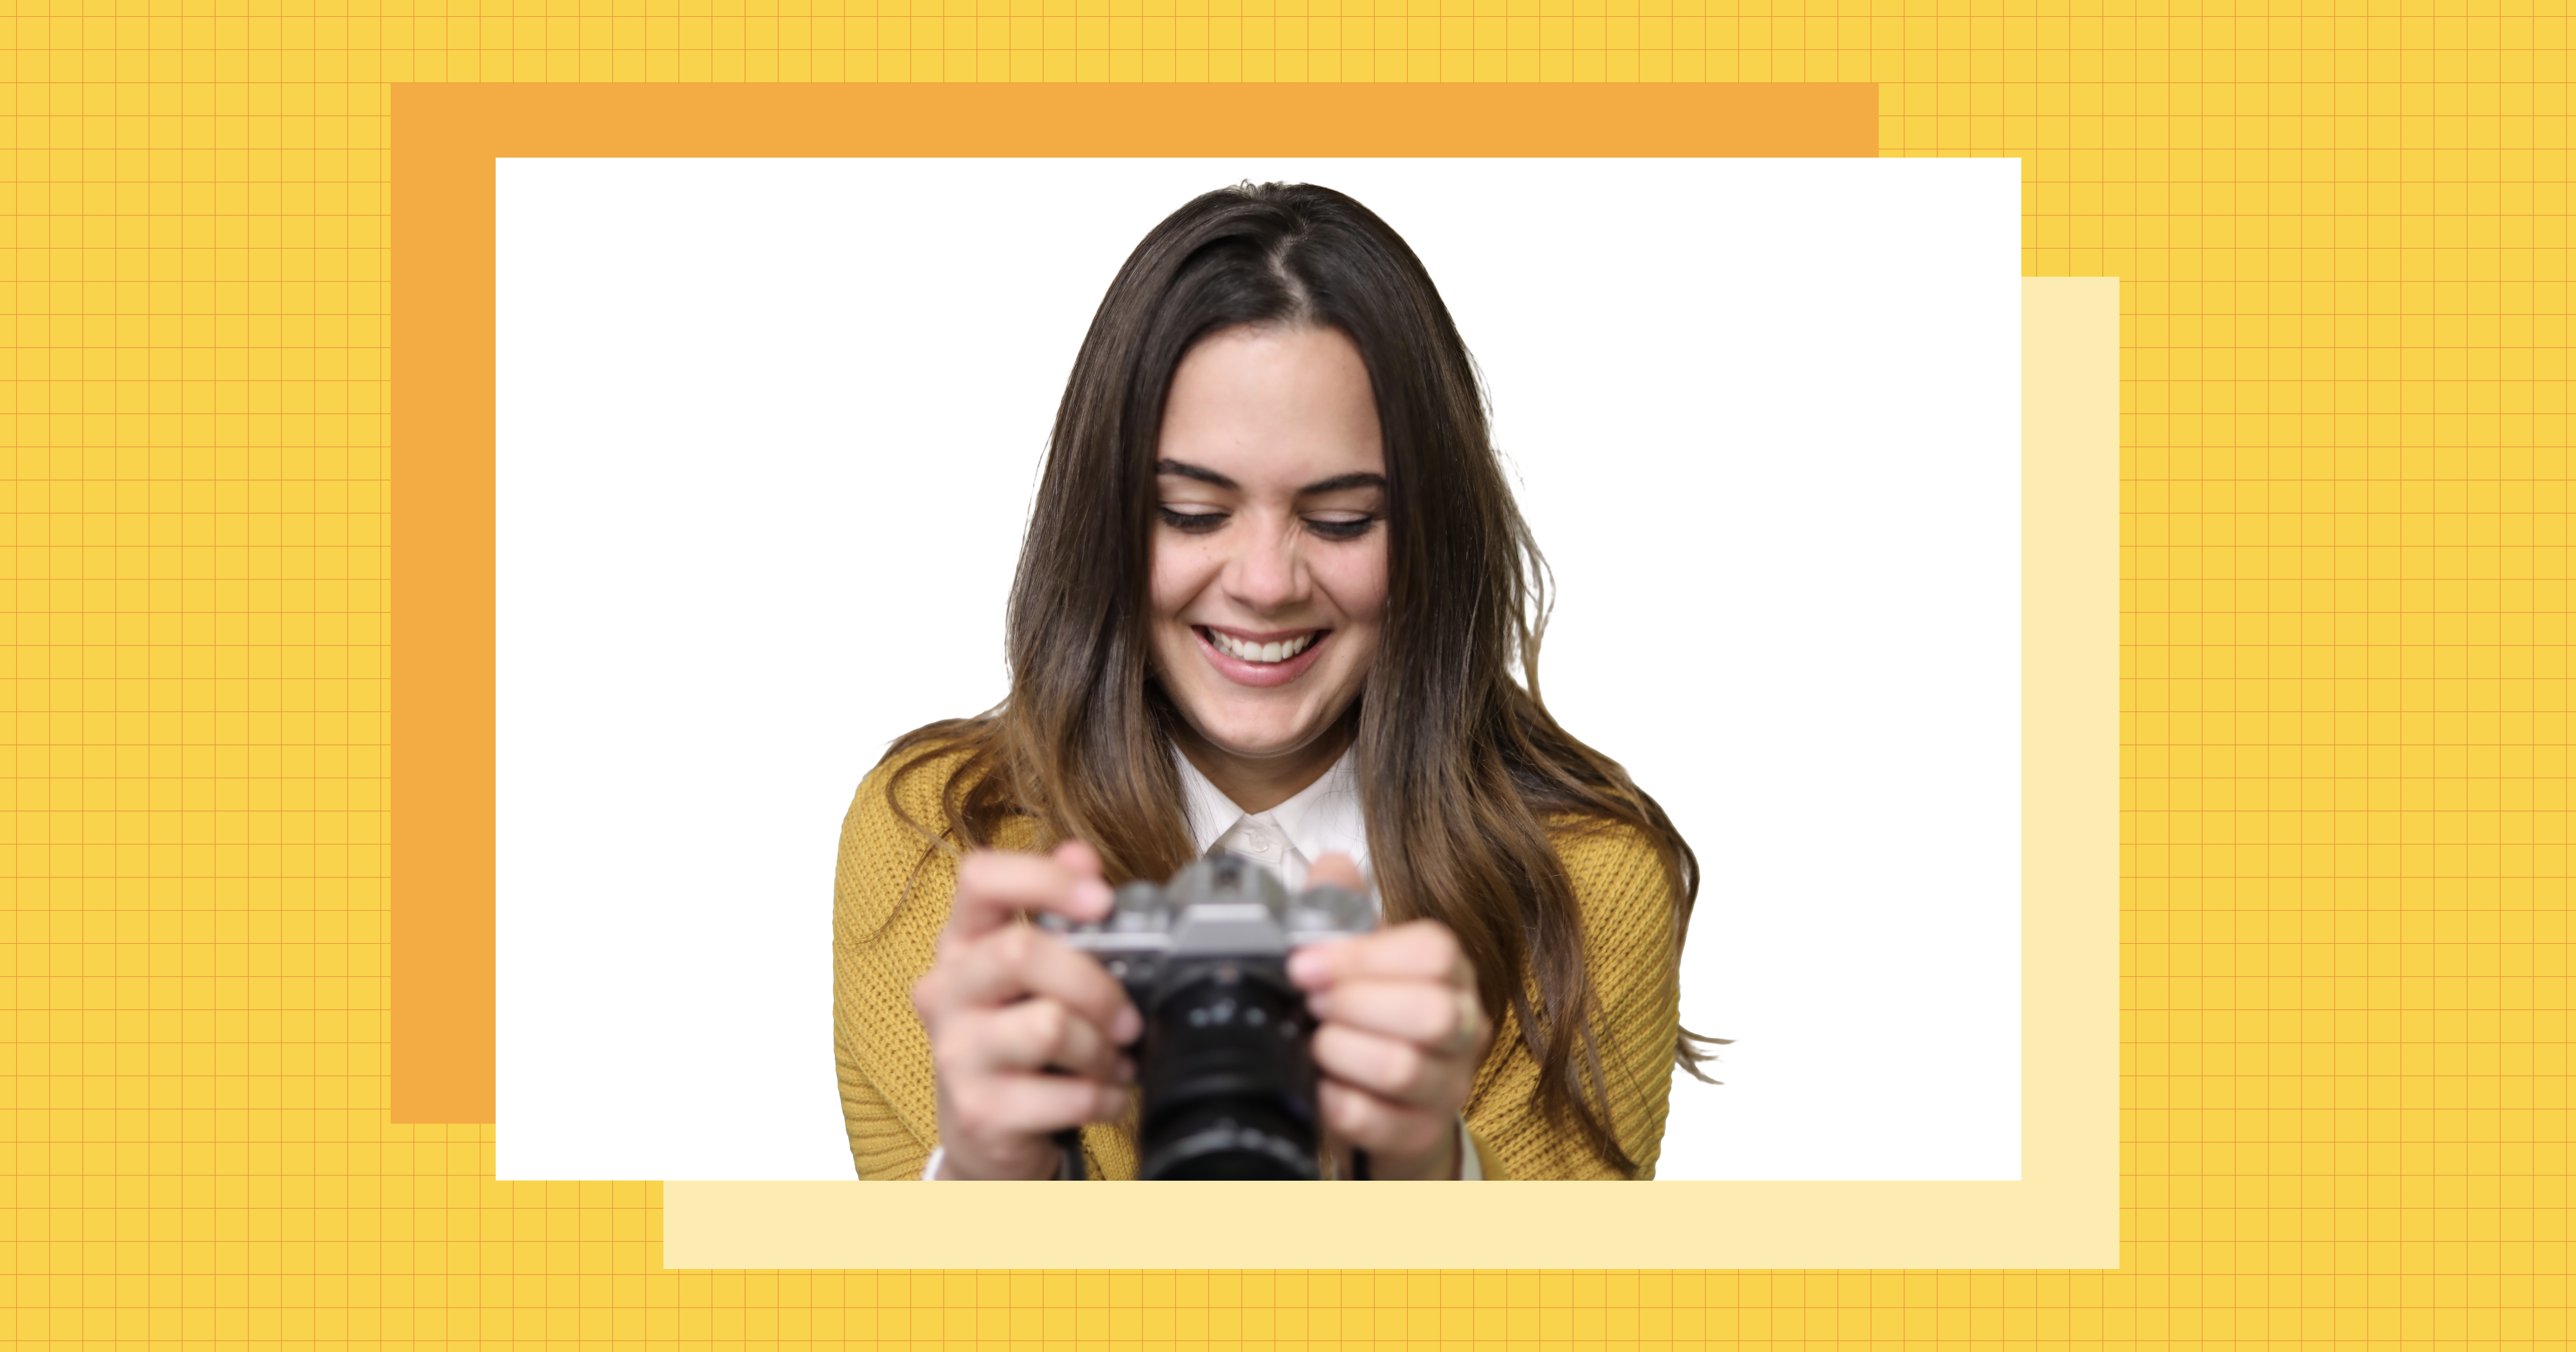 Karla looking at a camera smiling. They are also in a yellow frame.